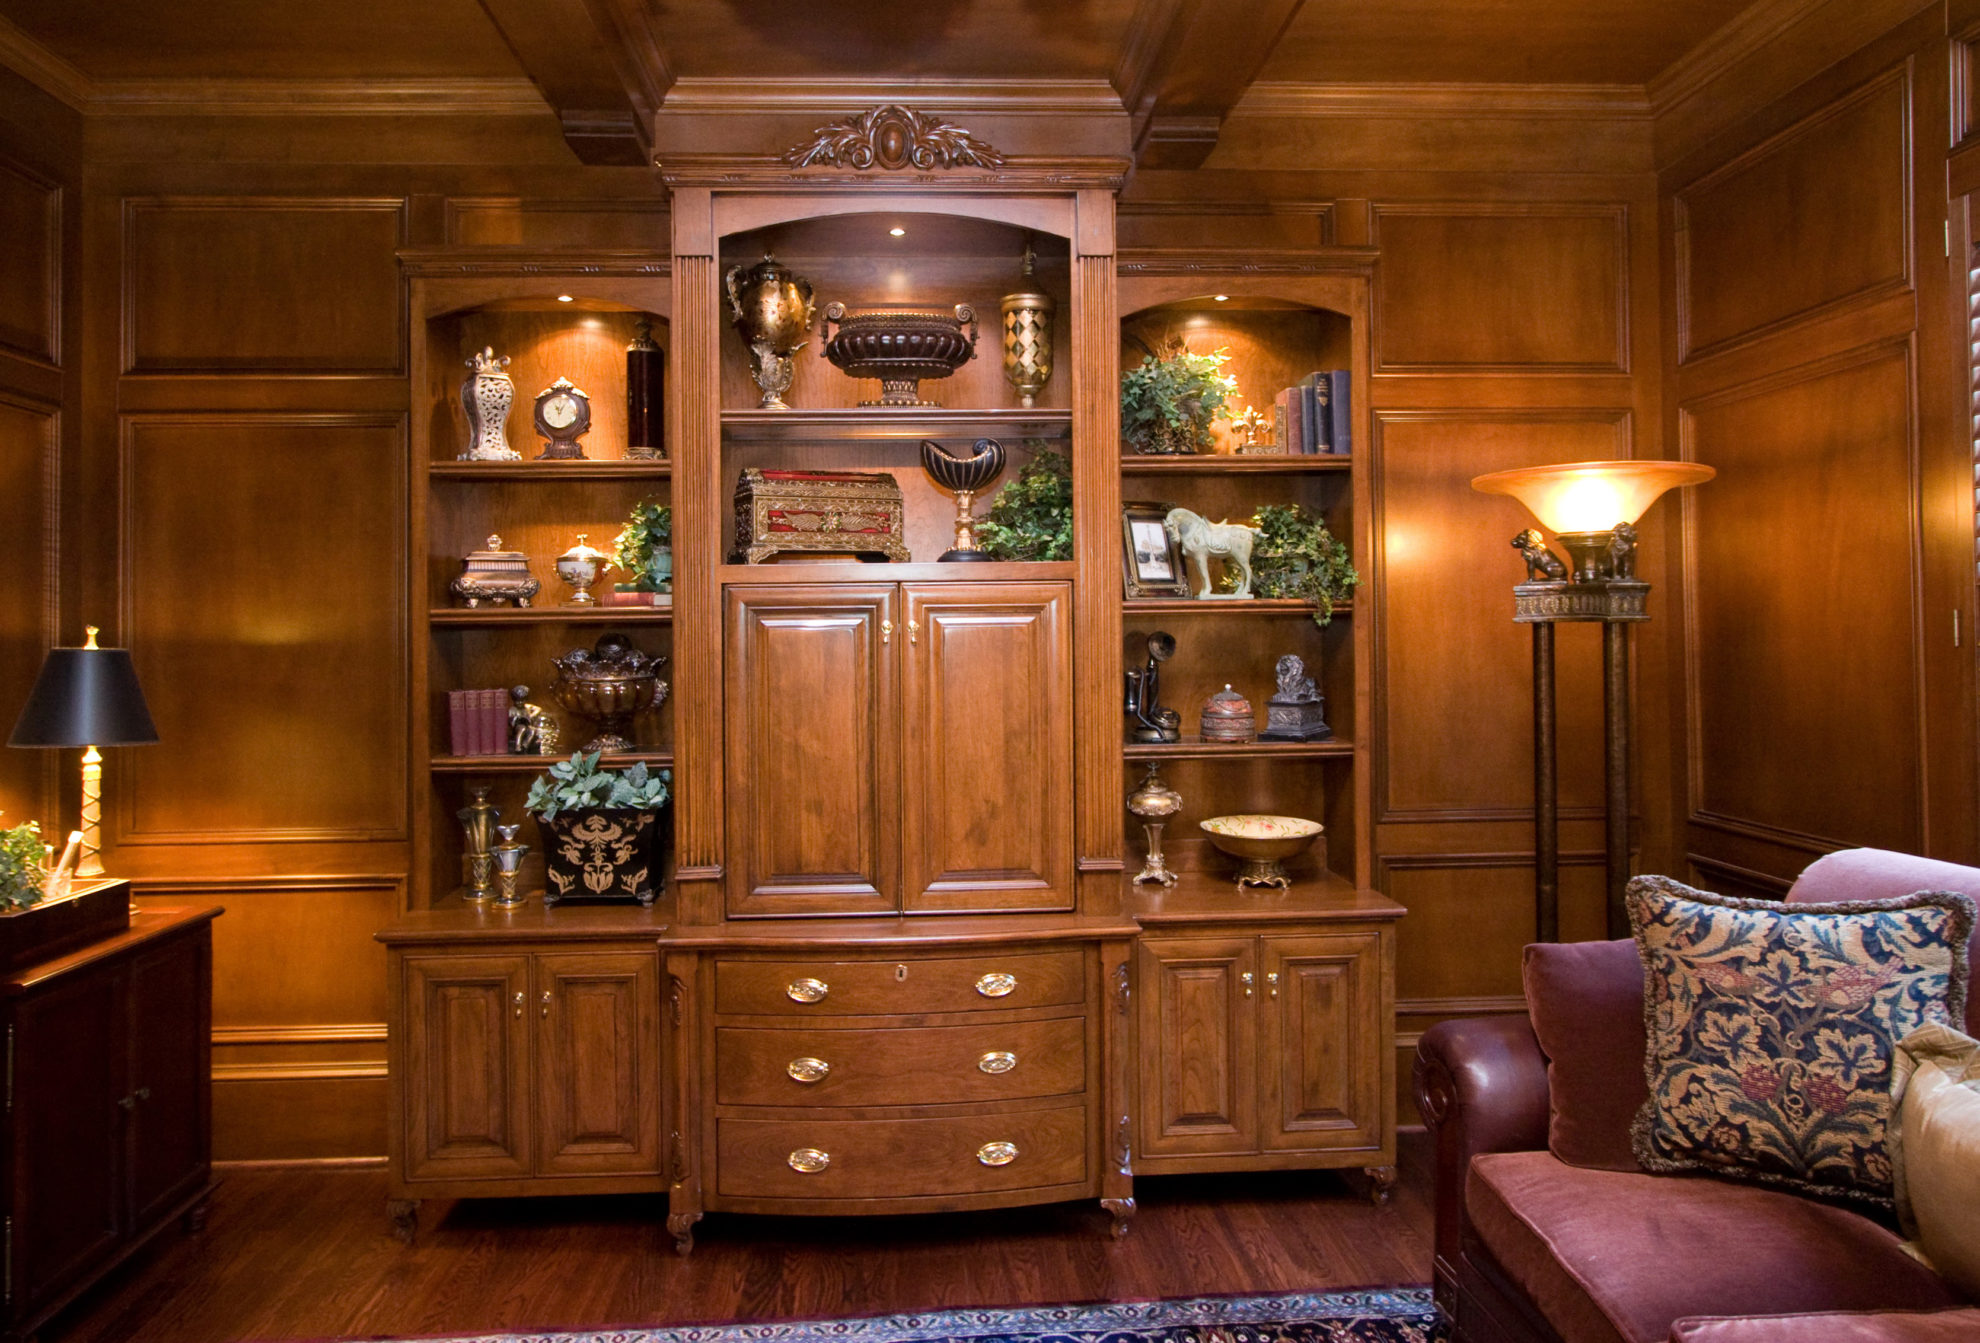 http://creativecabinetryinc.com/wp-content/uploads/2019/01/i-TV-office-display-cabinet-e1548866014564.jpg